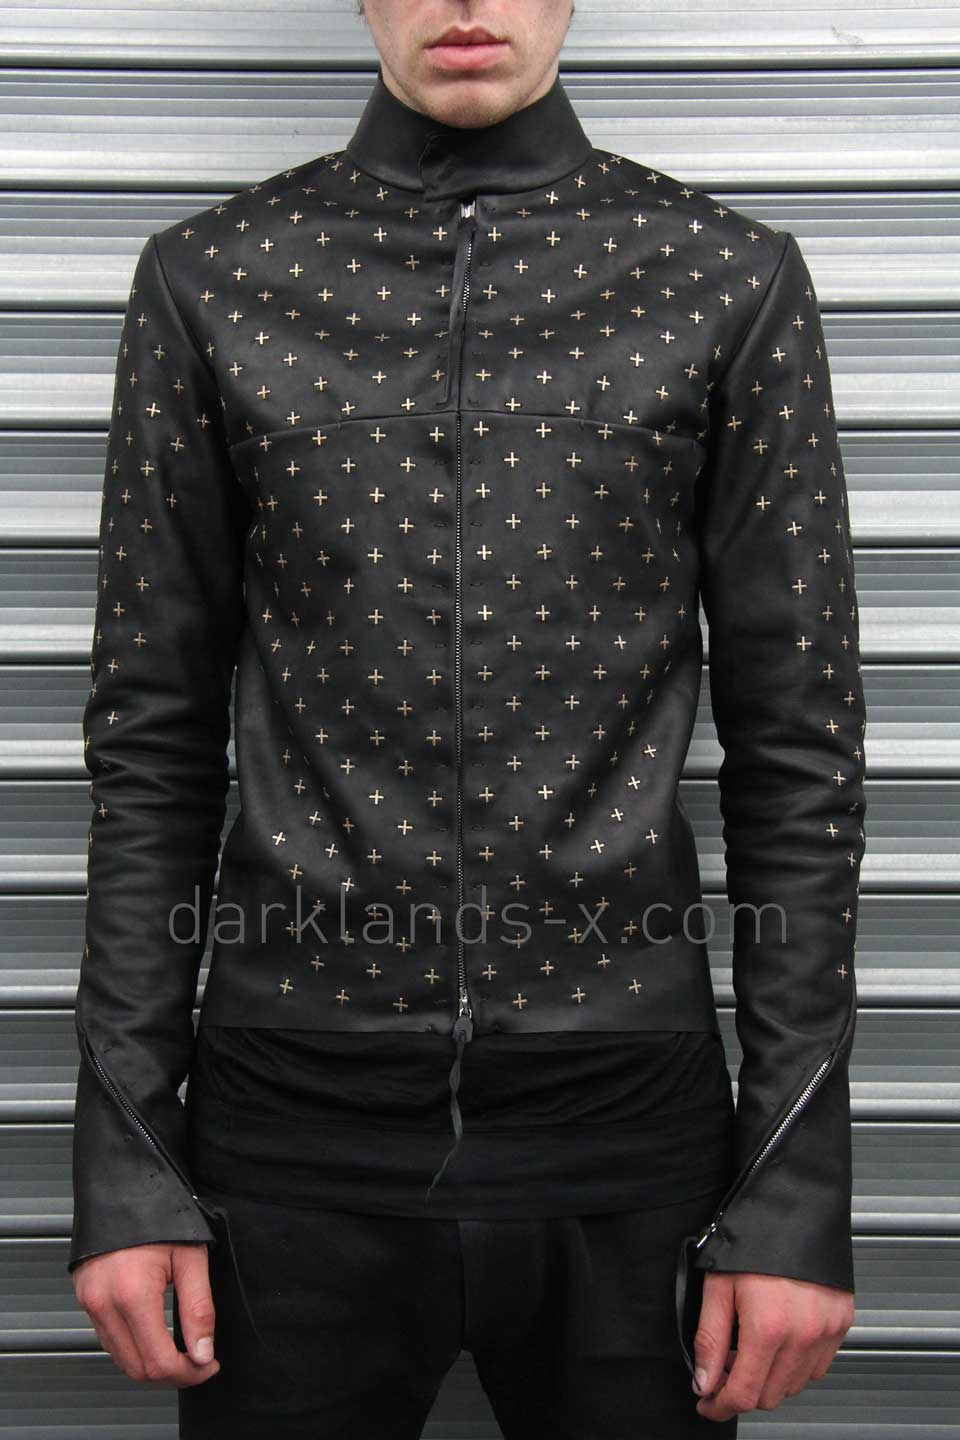 m.a+ Zipped Sleeves Biker Jacket with Silver Crosses